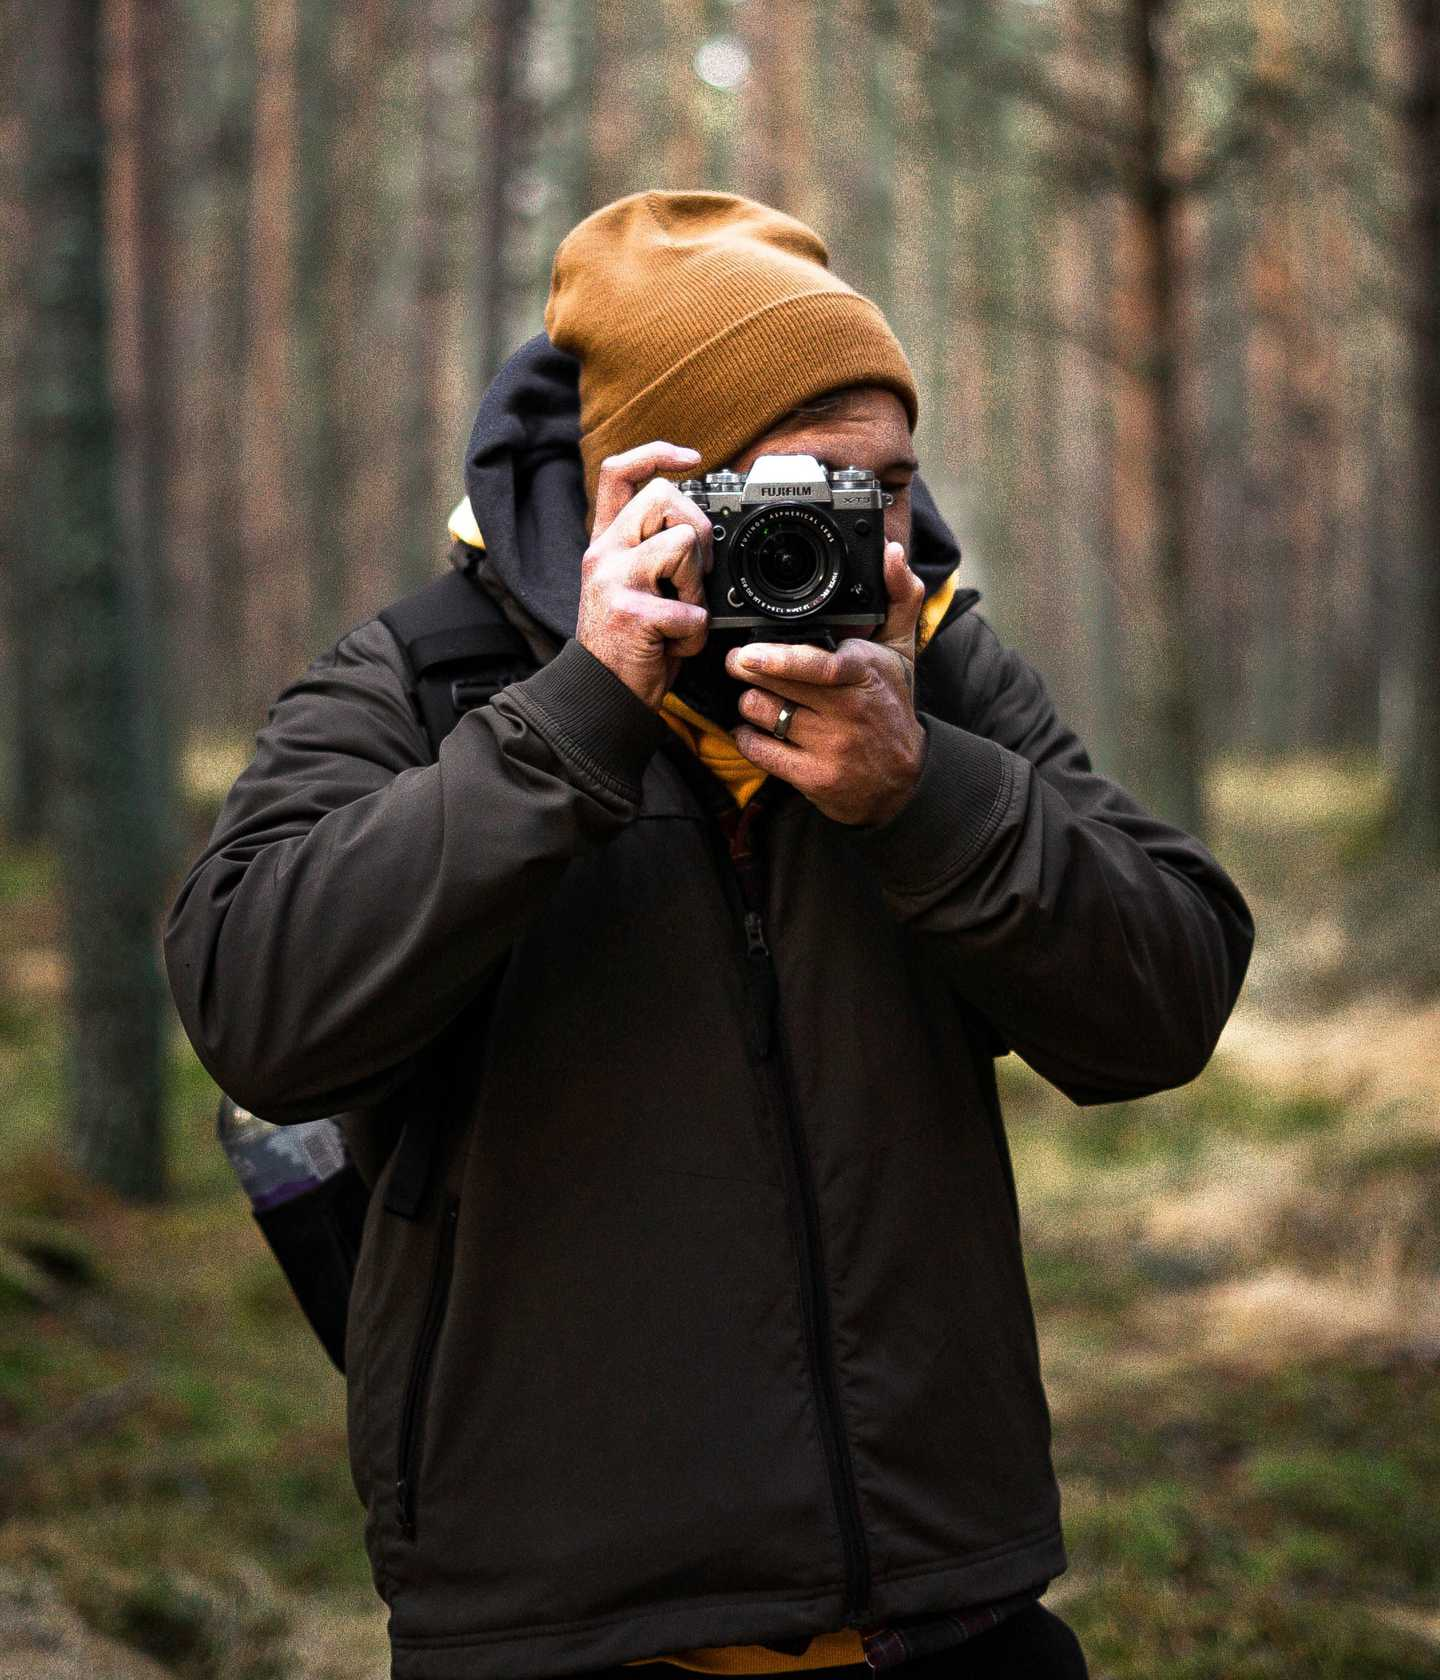 Man in woods shooting a photo